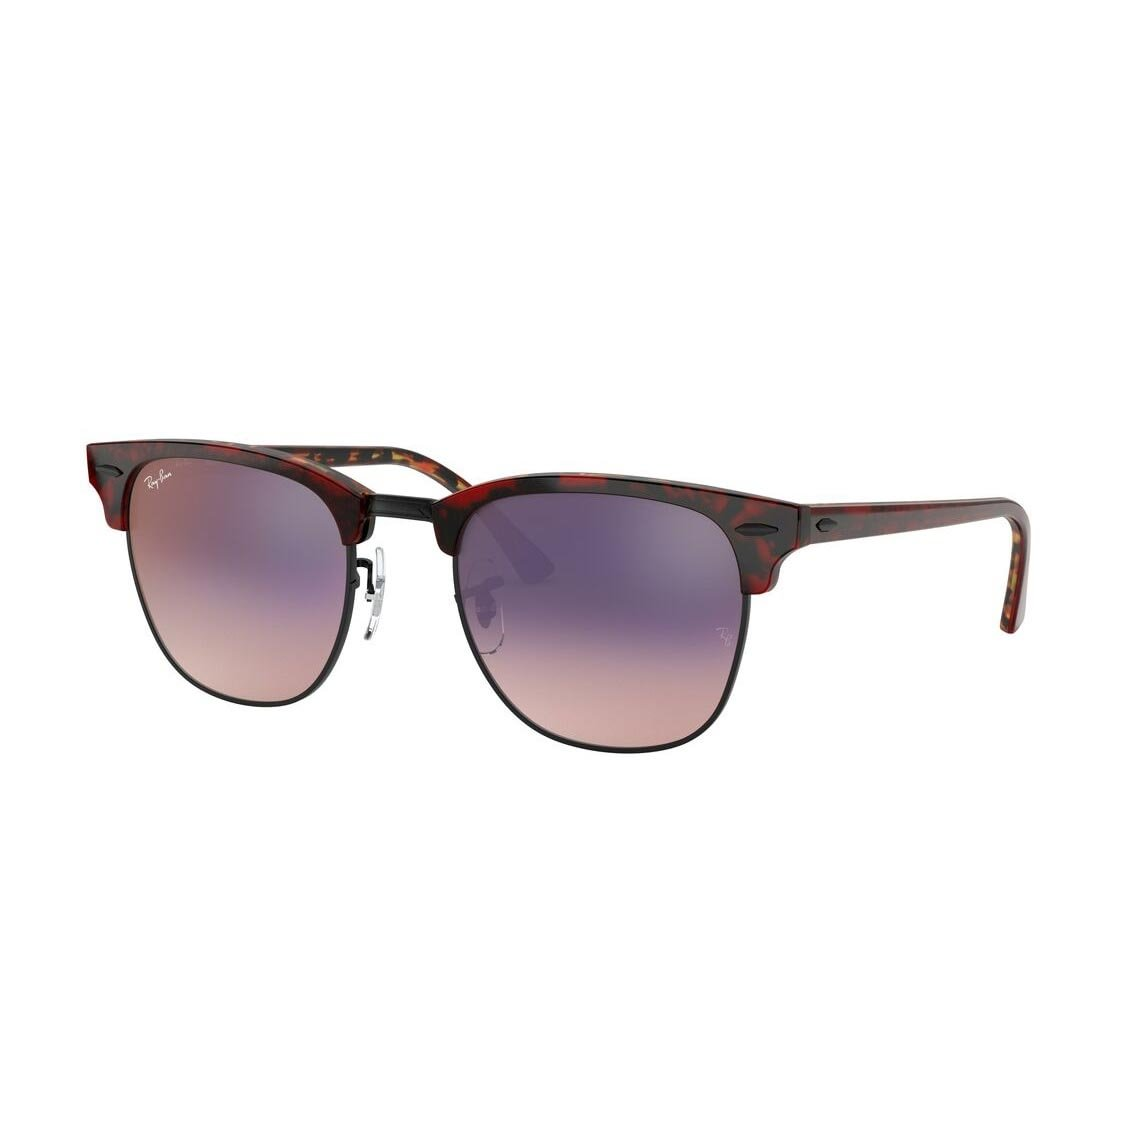 Ray-Ban Clubmaster RB3016 12753B 5121